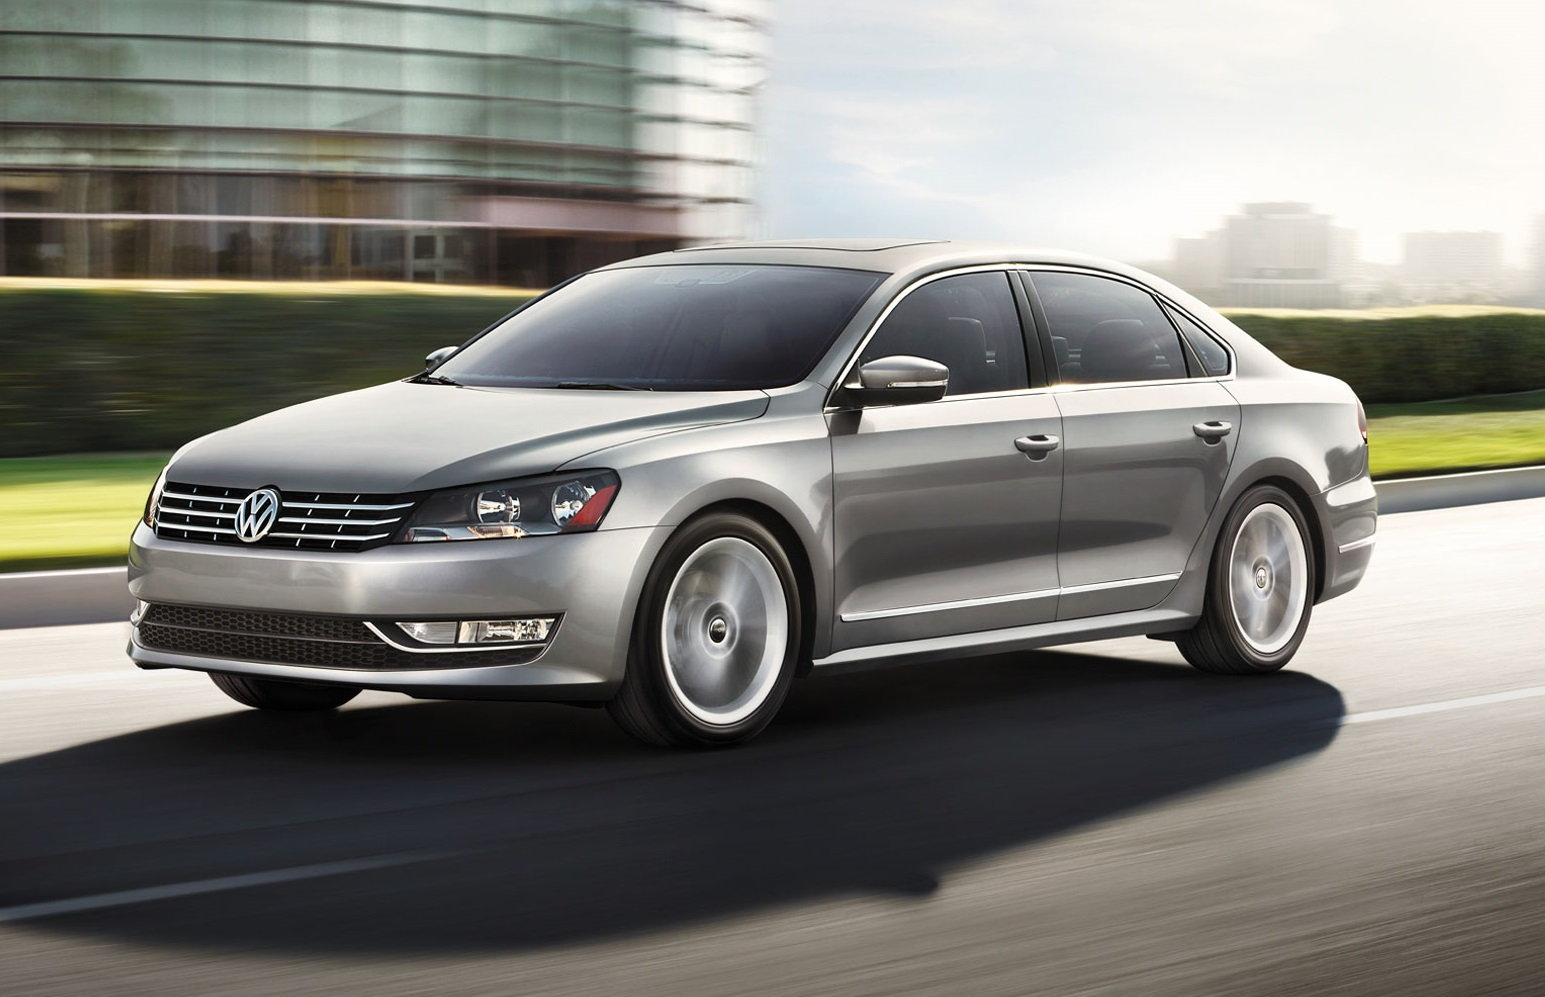 The Best Sedans For Good Gas Mileage Carsdirect